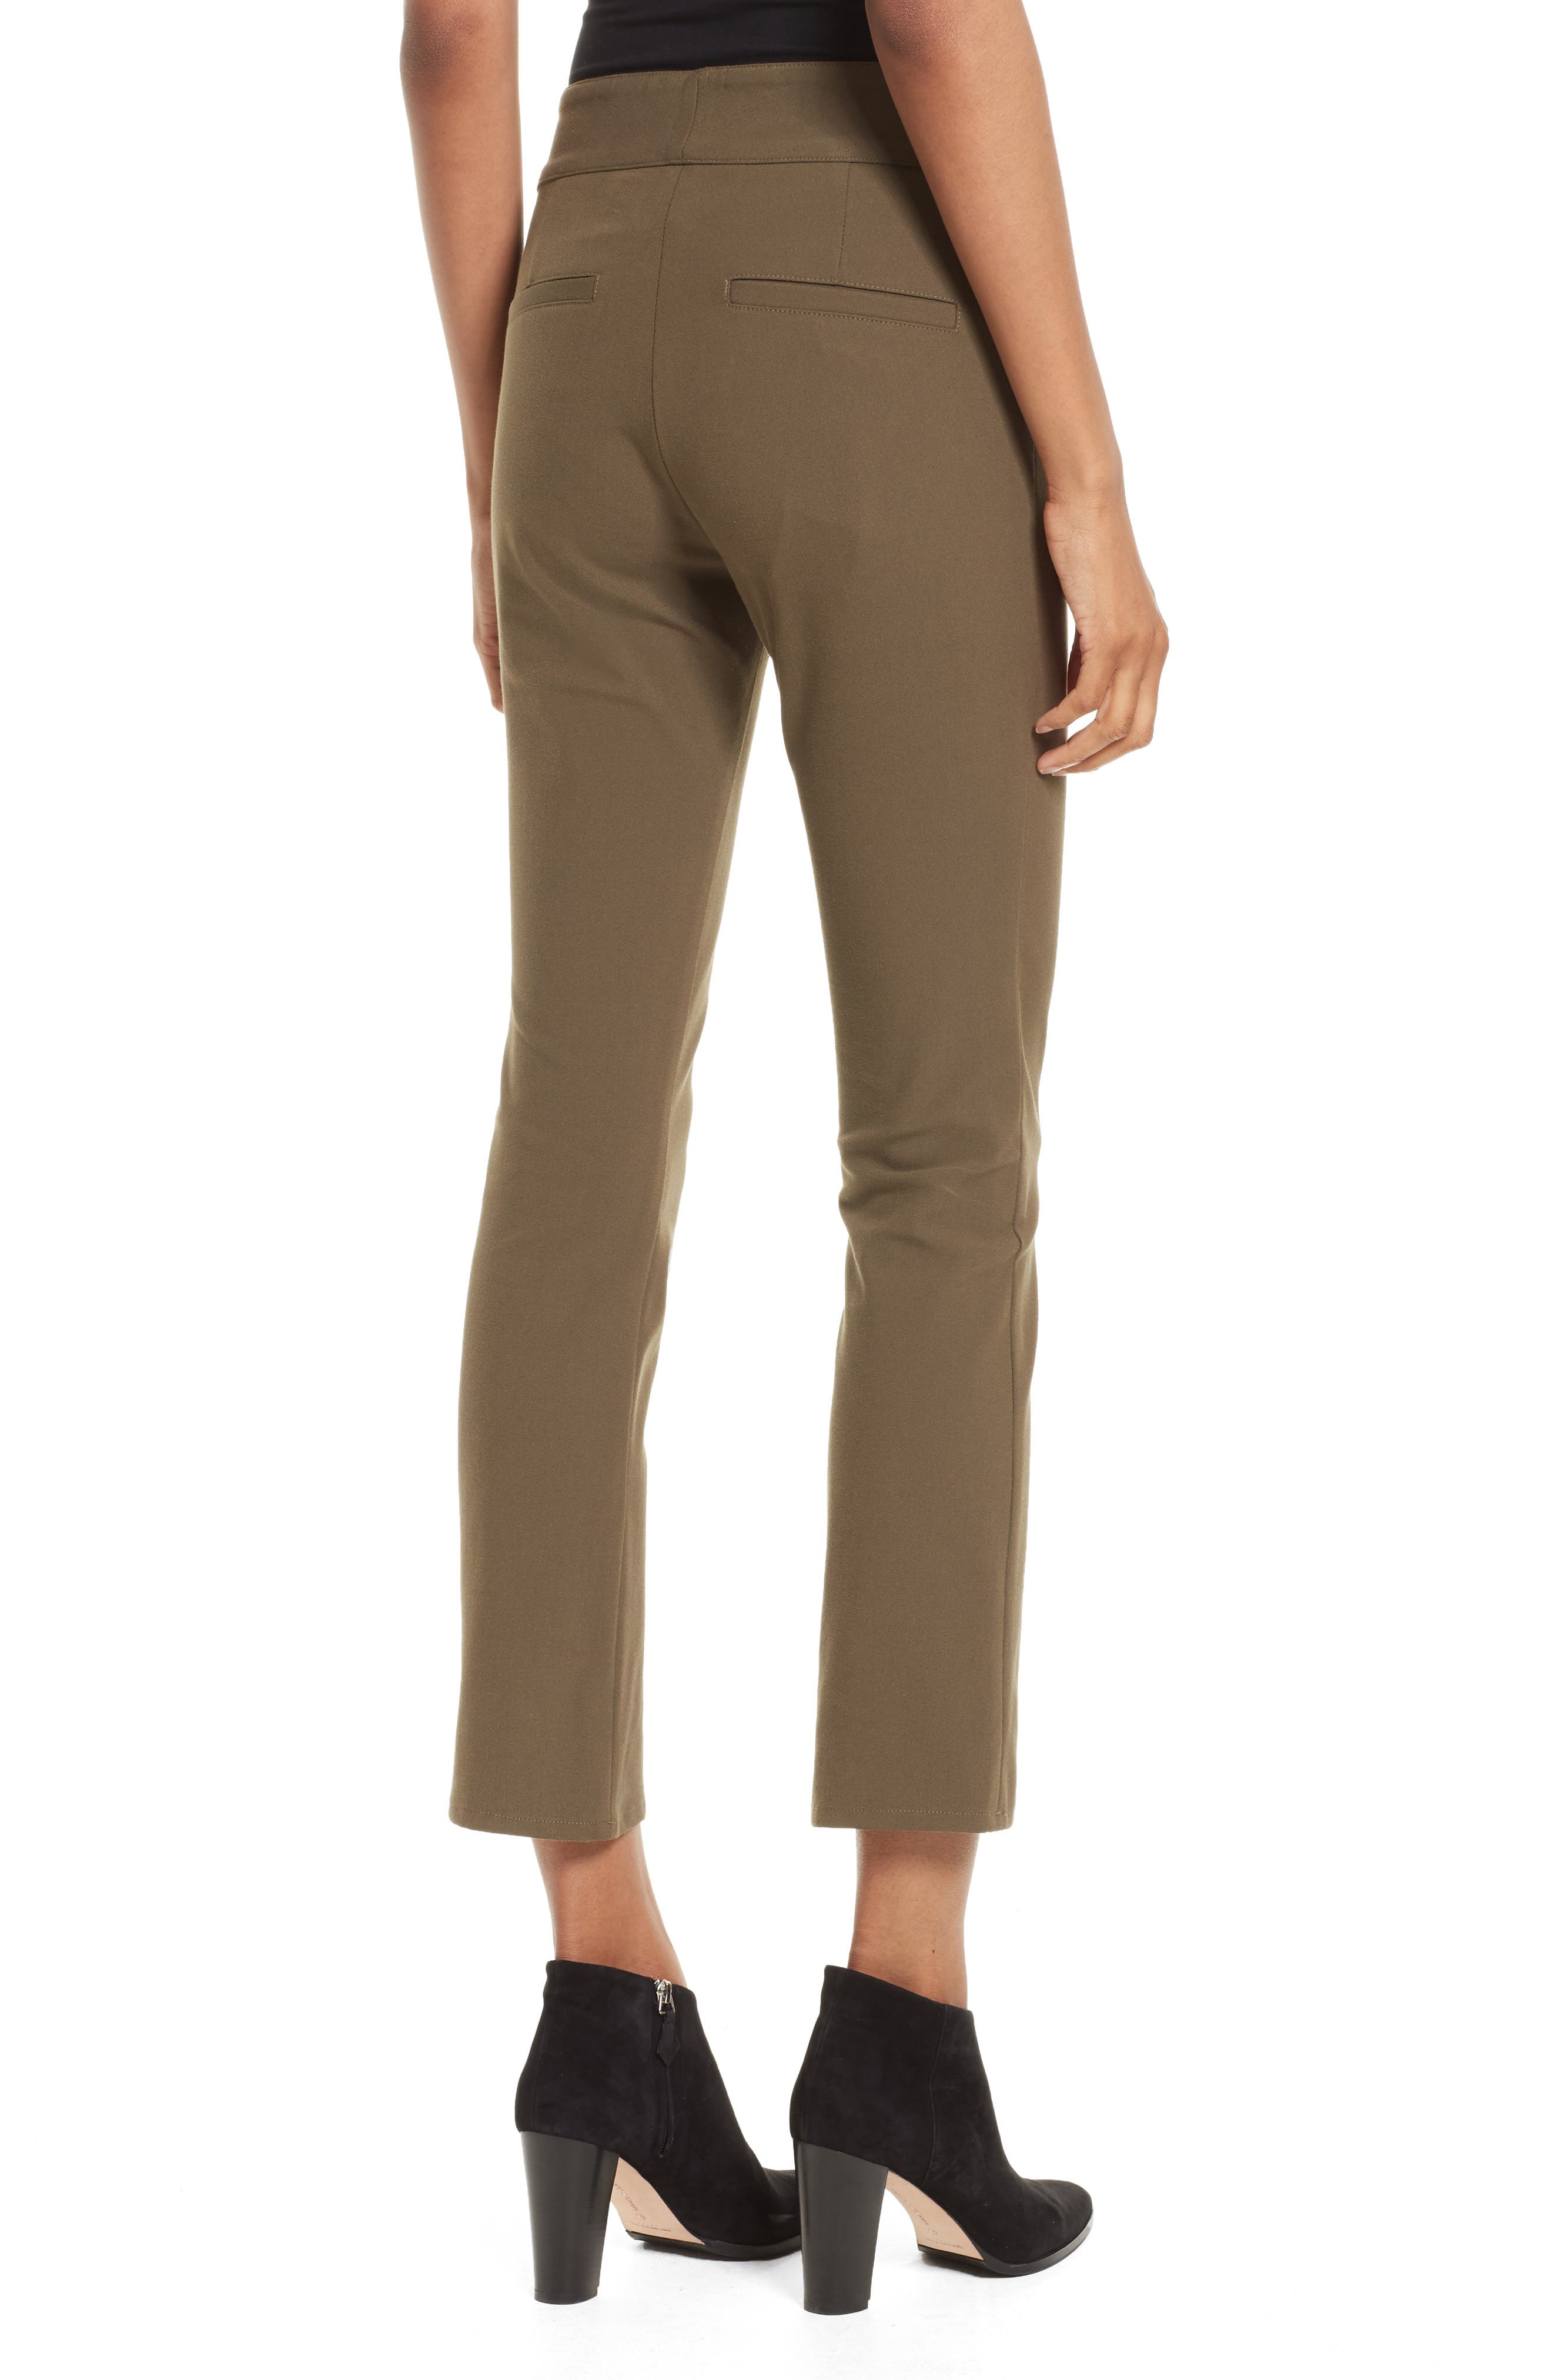 Adelaide Zipper Detail Crop Pants,                             Alternate thumbnail 2, color,                             Army Green